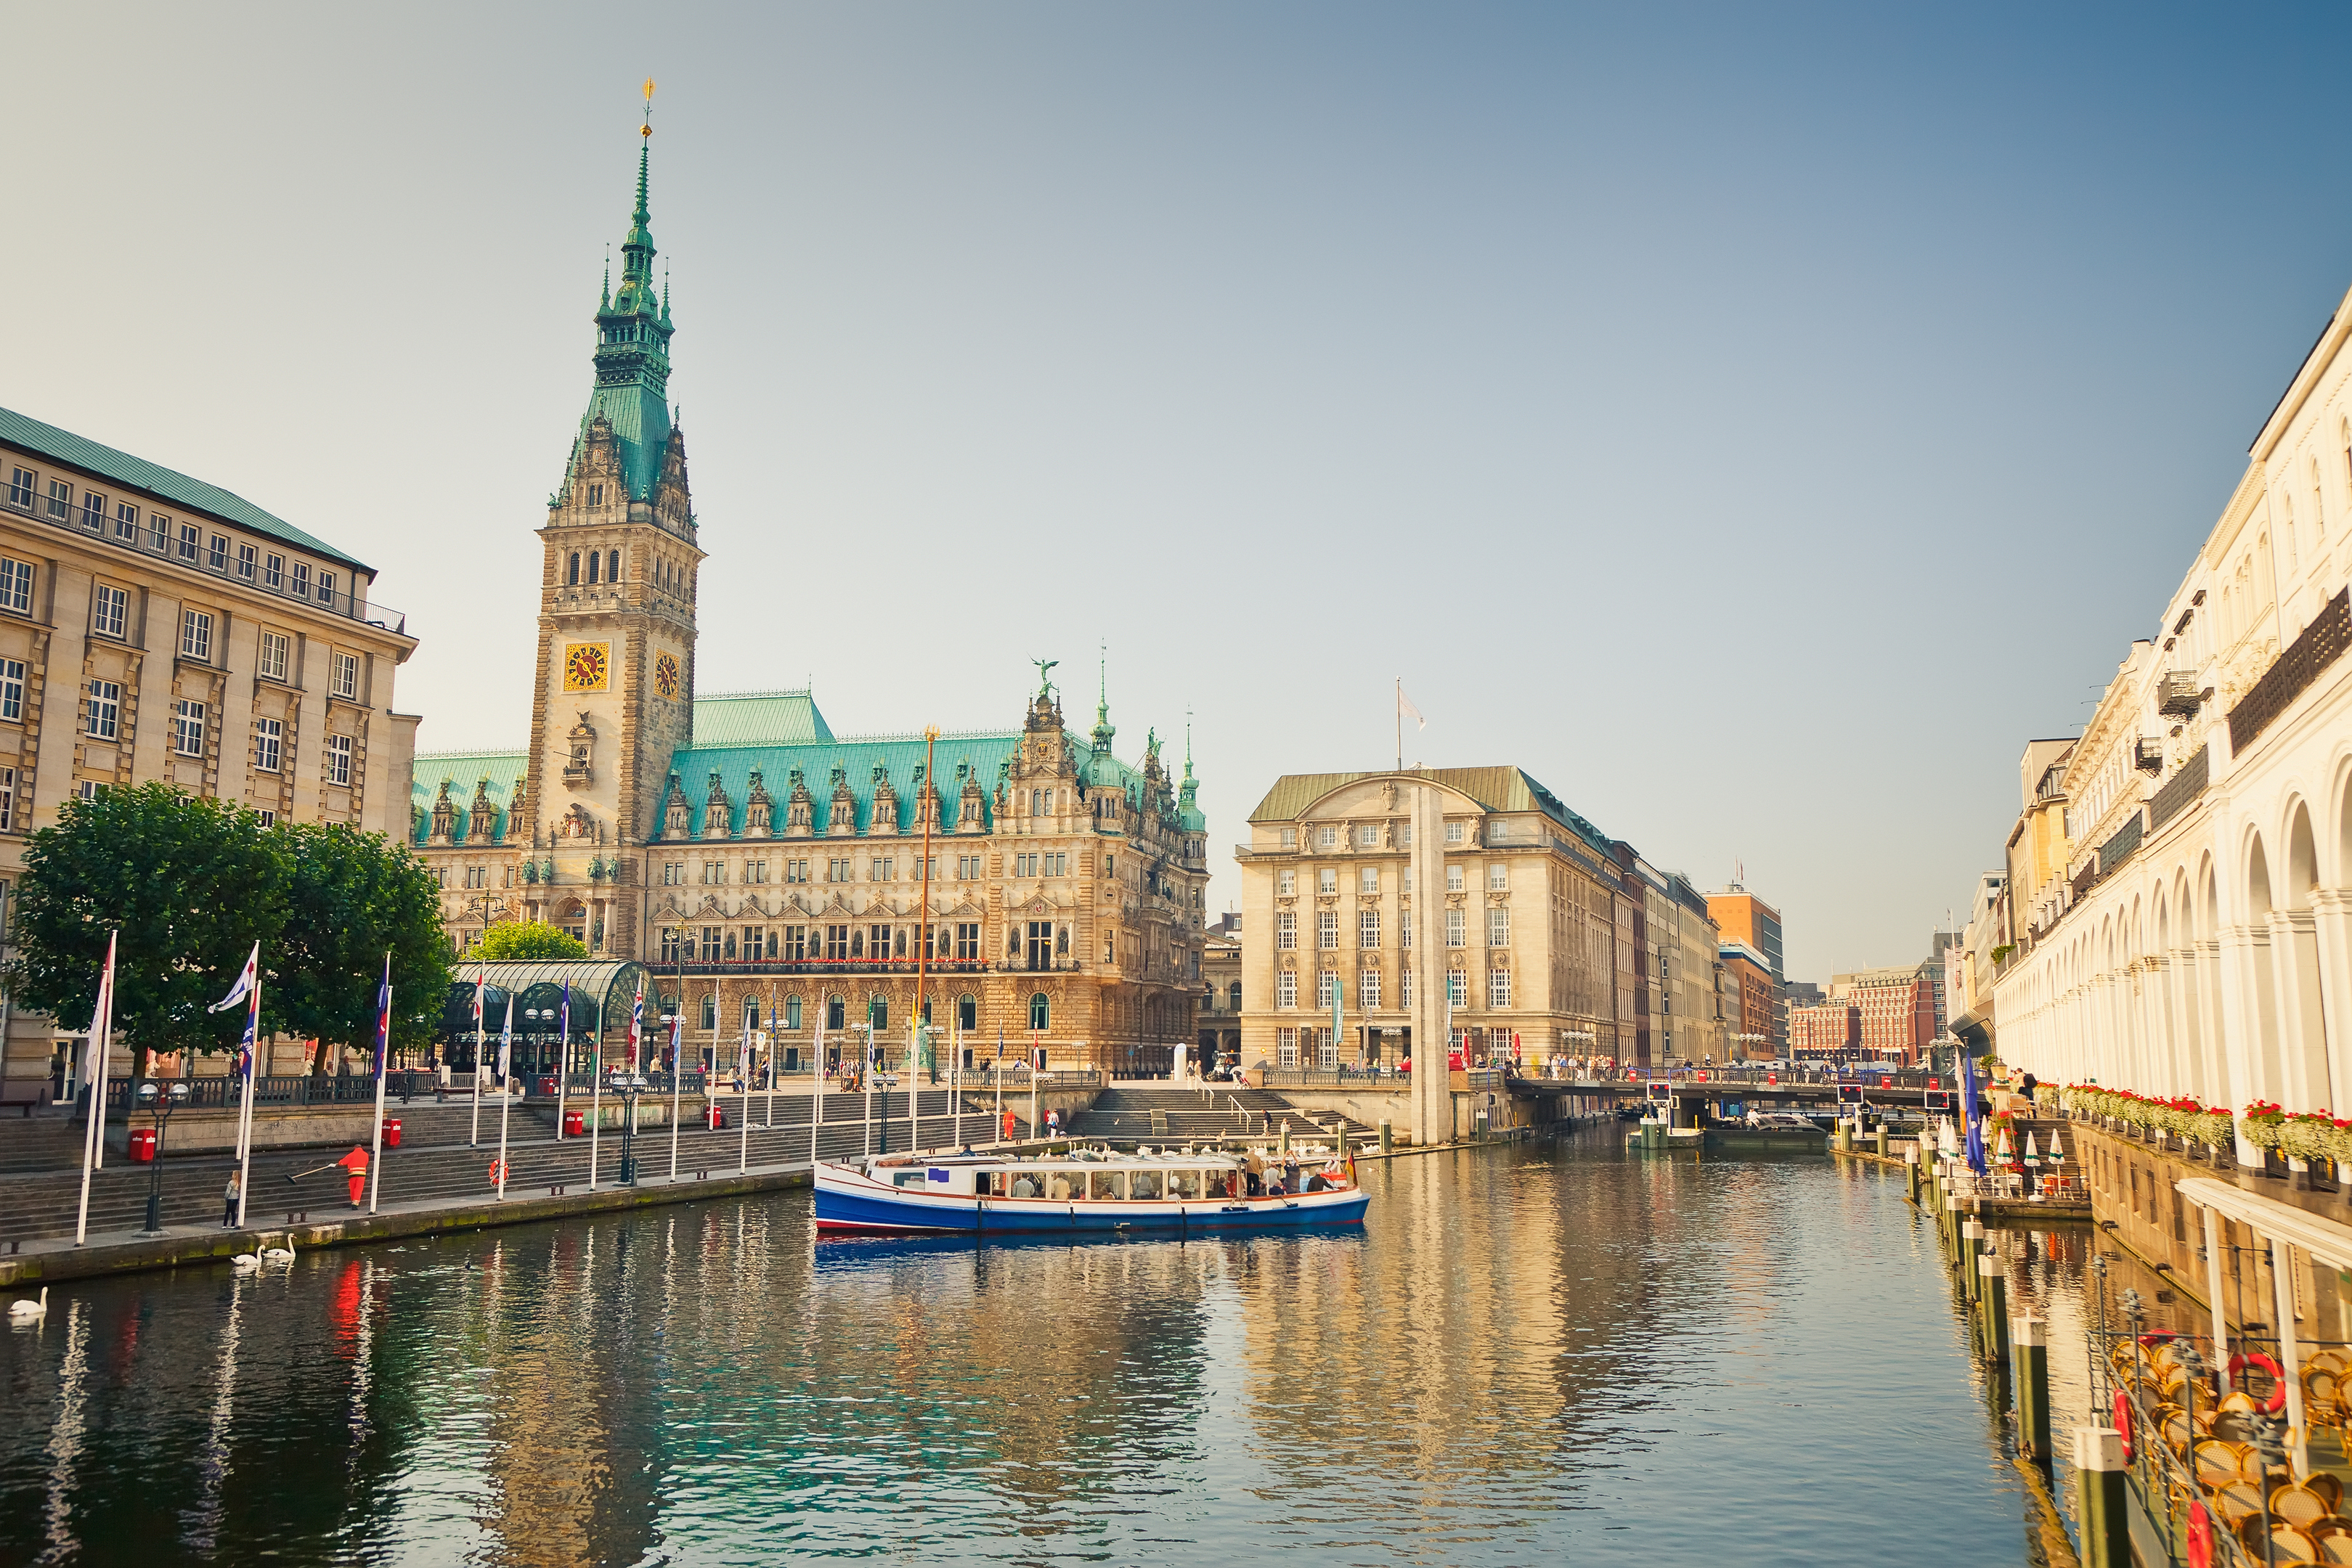 Hamburg town hall and Alster river (iStock)